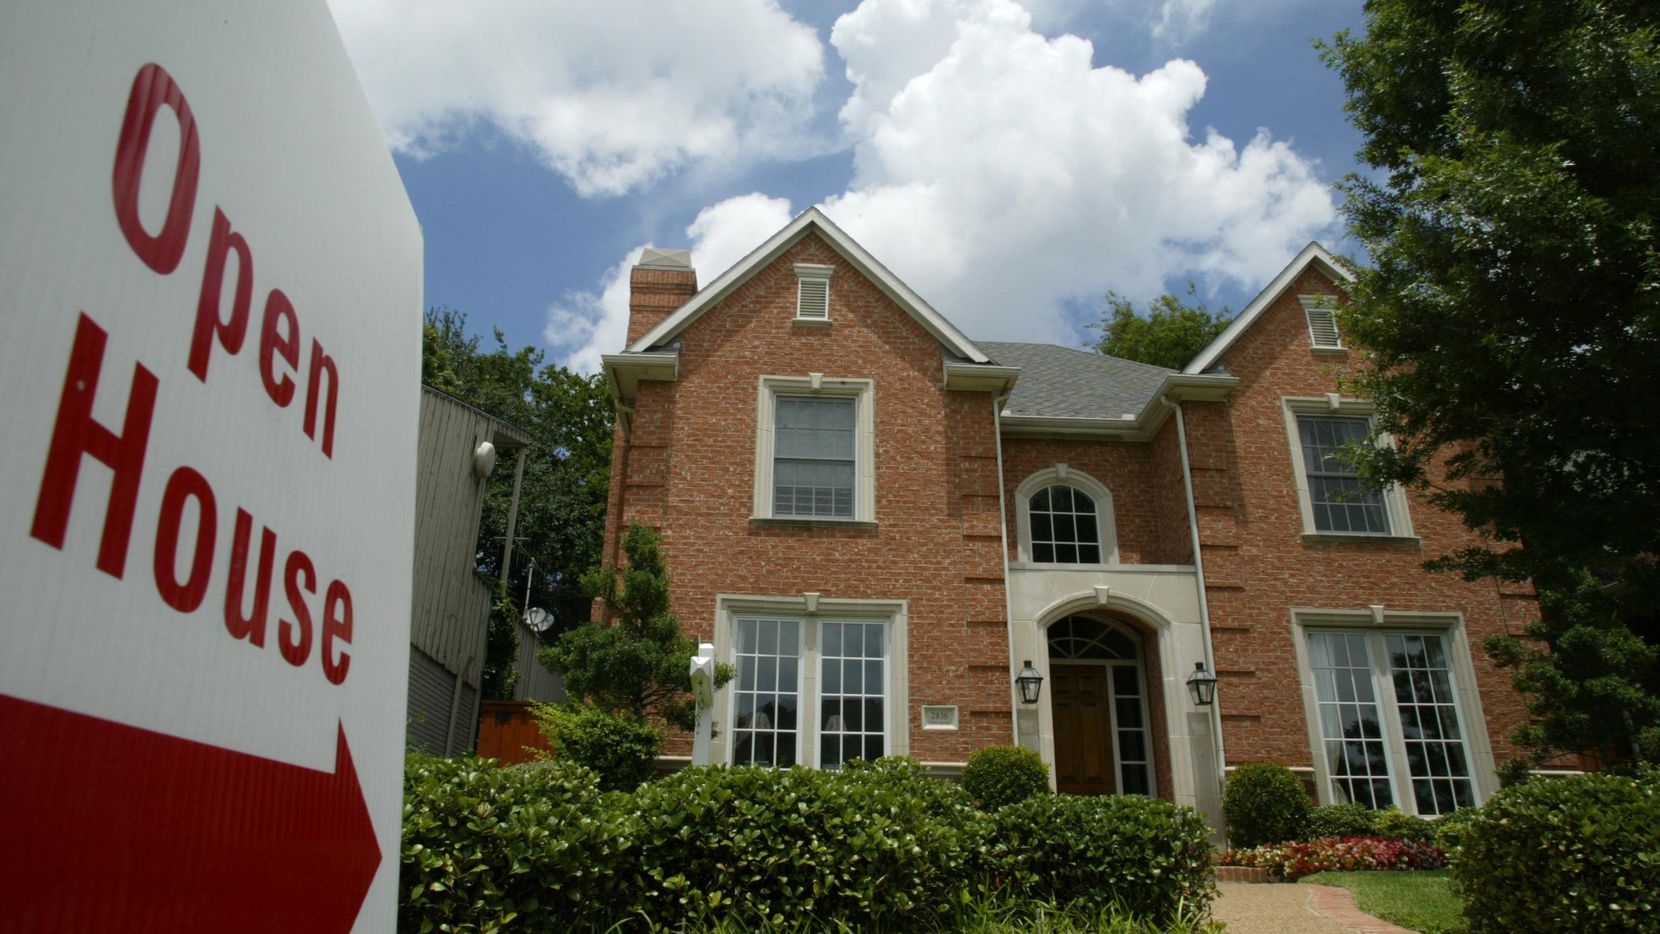 Big price jumps and low inventories have made Dallas' housing market sustainable, analysts warn.